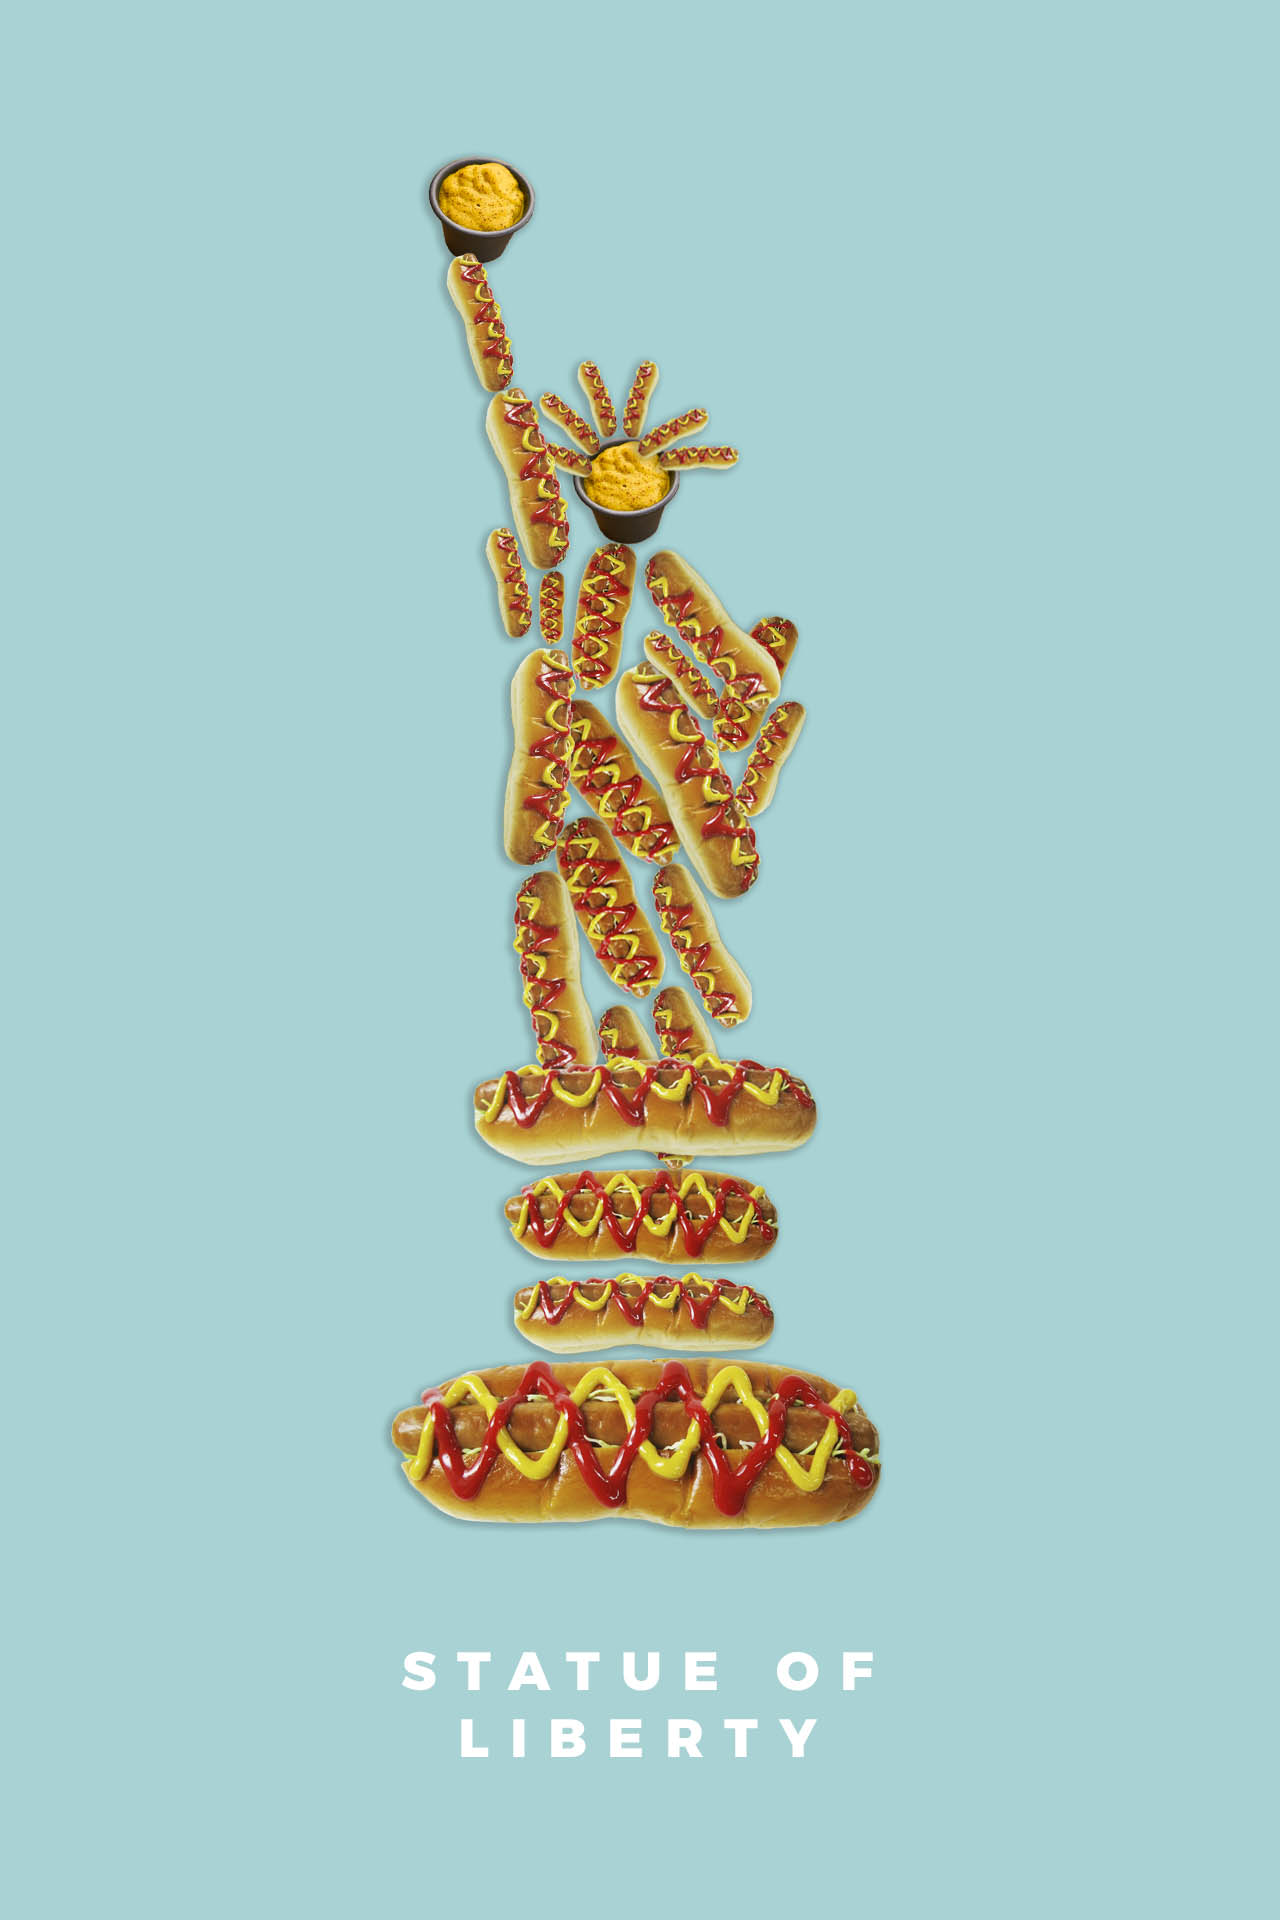 Statue of Liberty hot dog food illustration